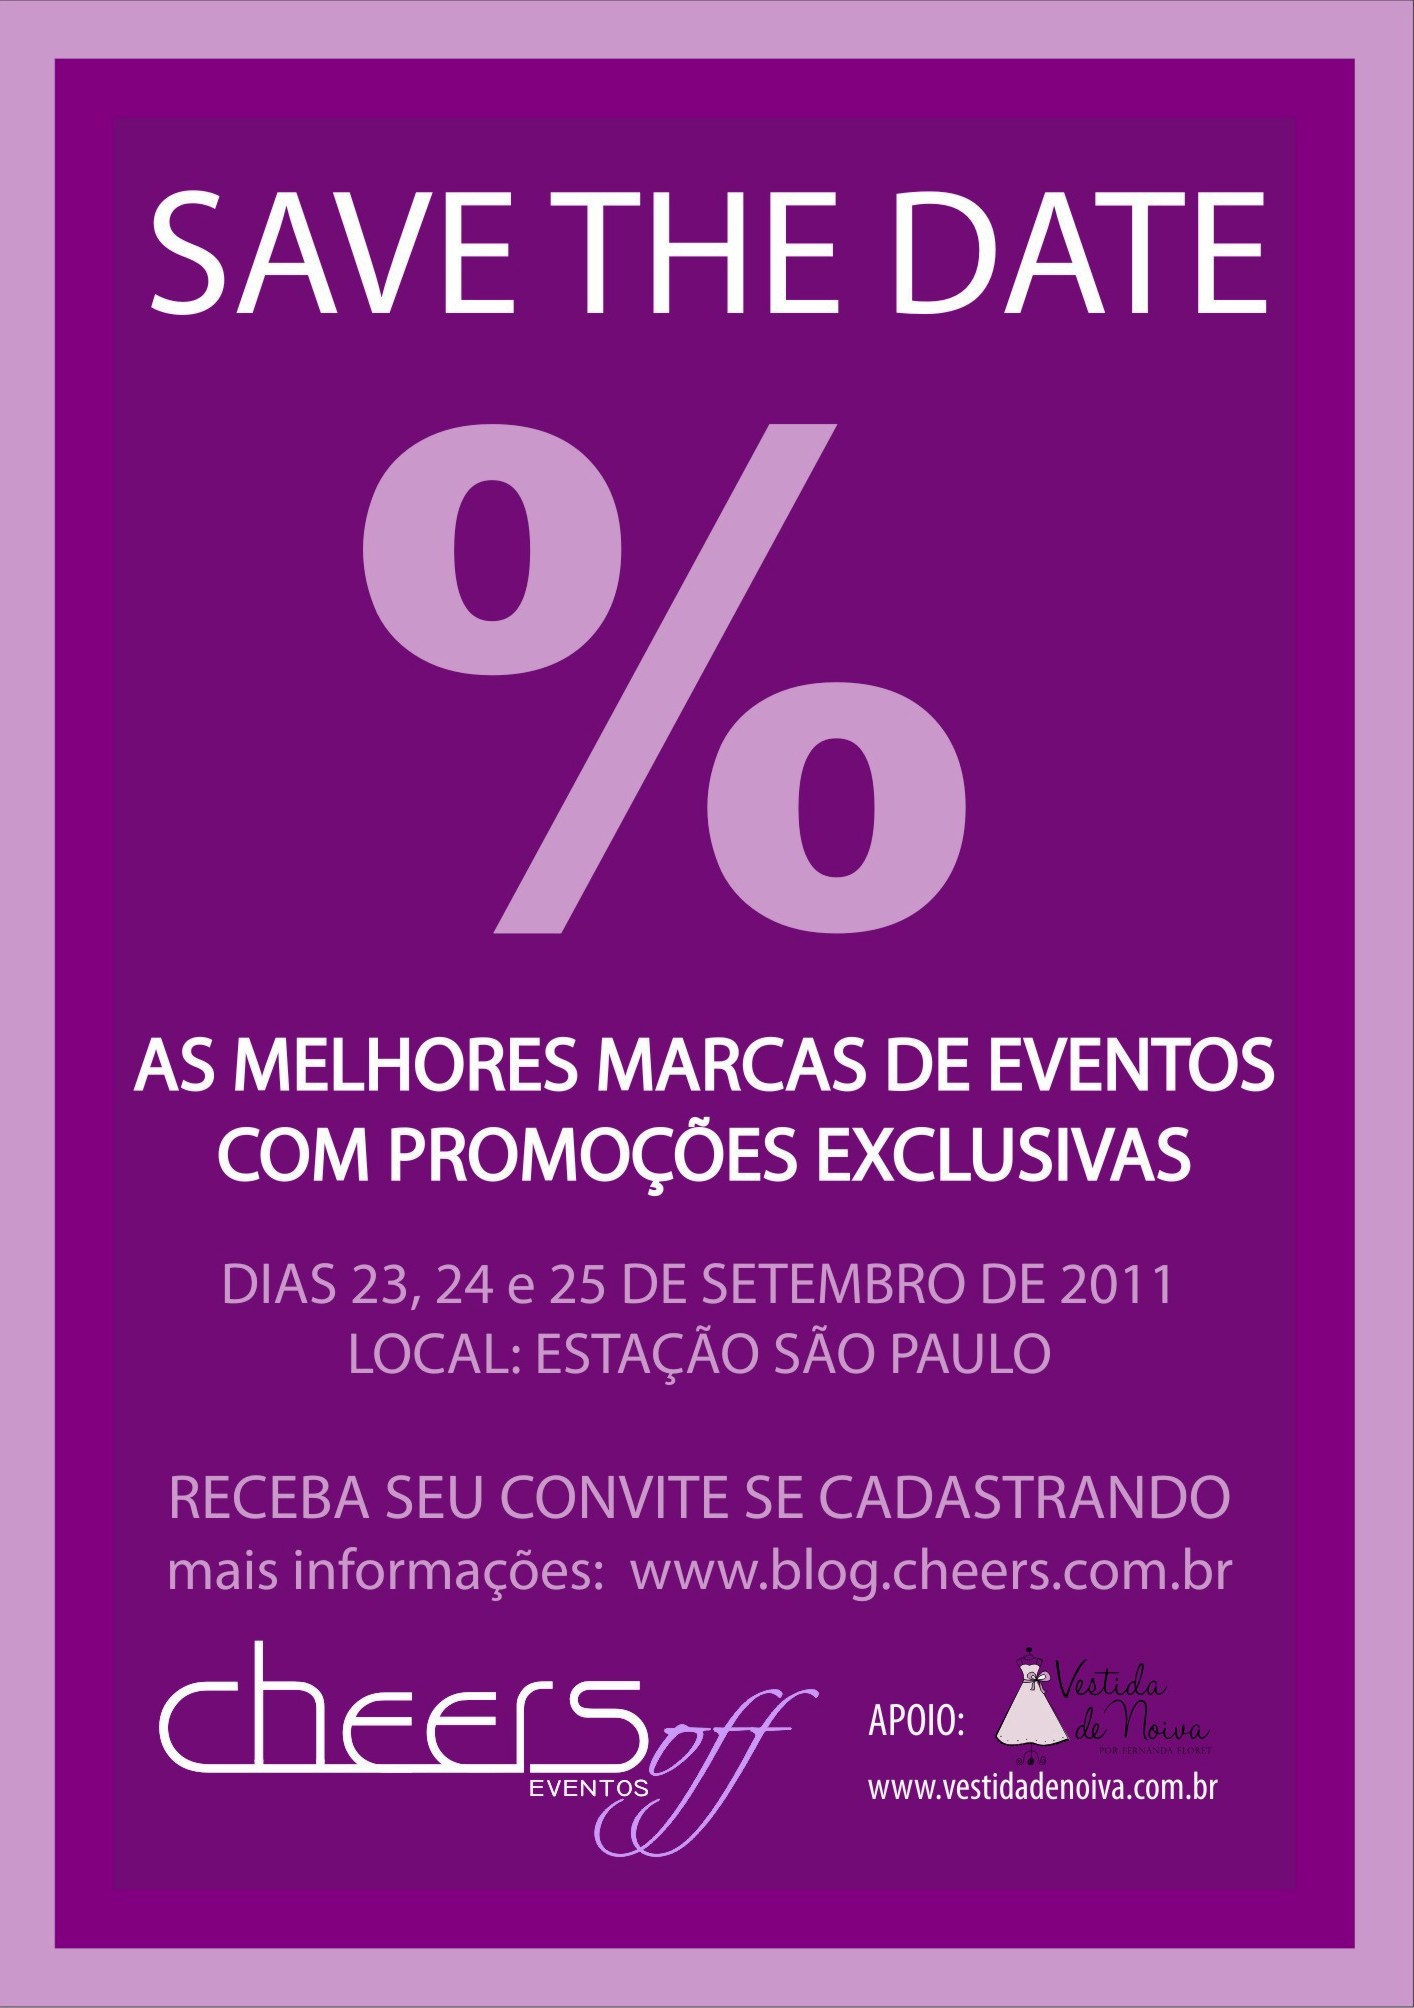 save the date cheers off Save The Data / Cheers Off fotografo